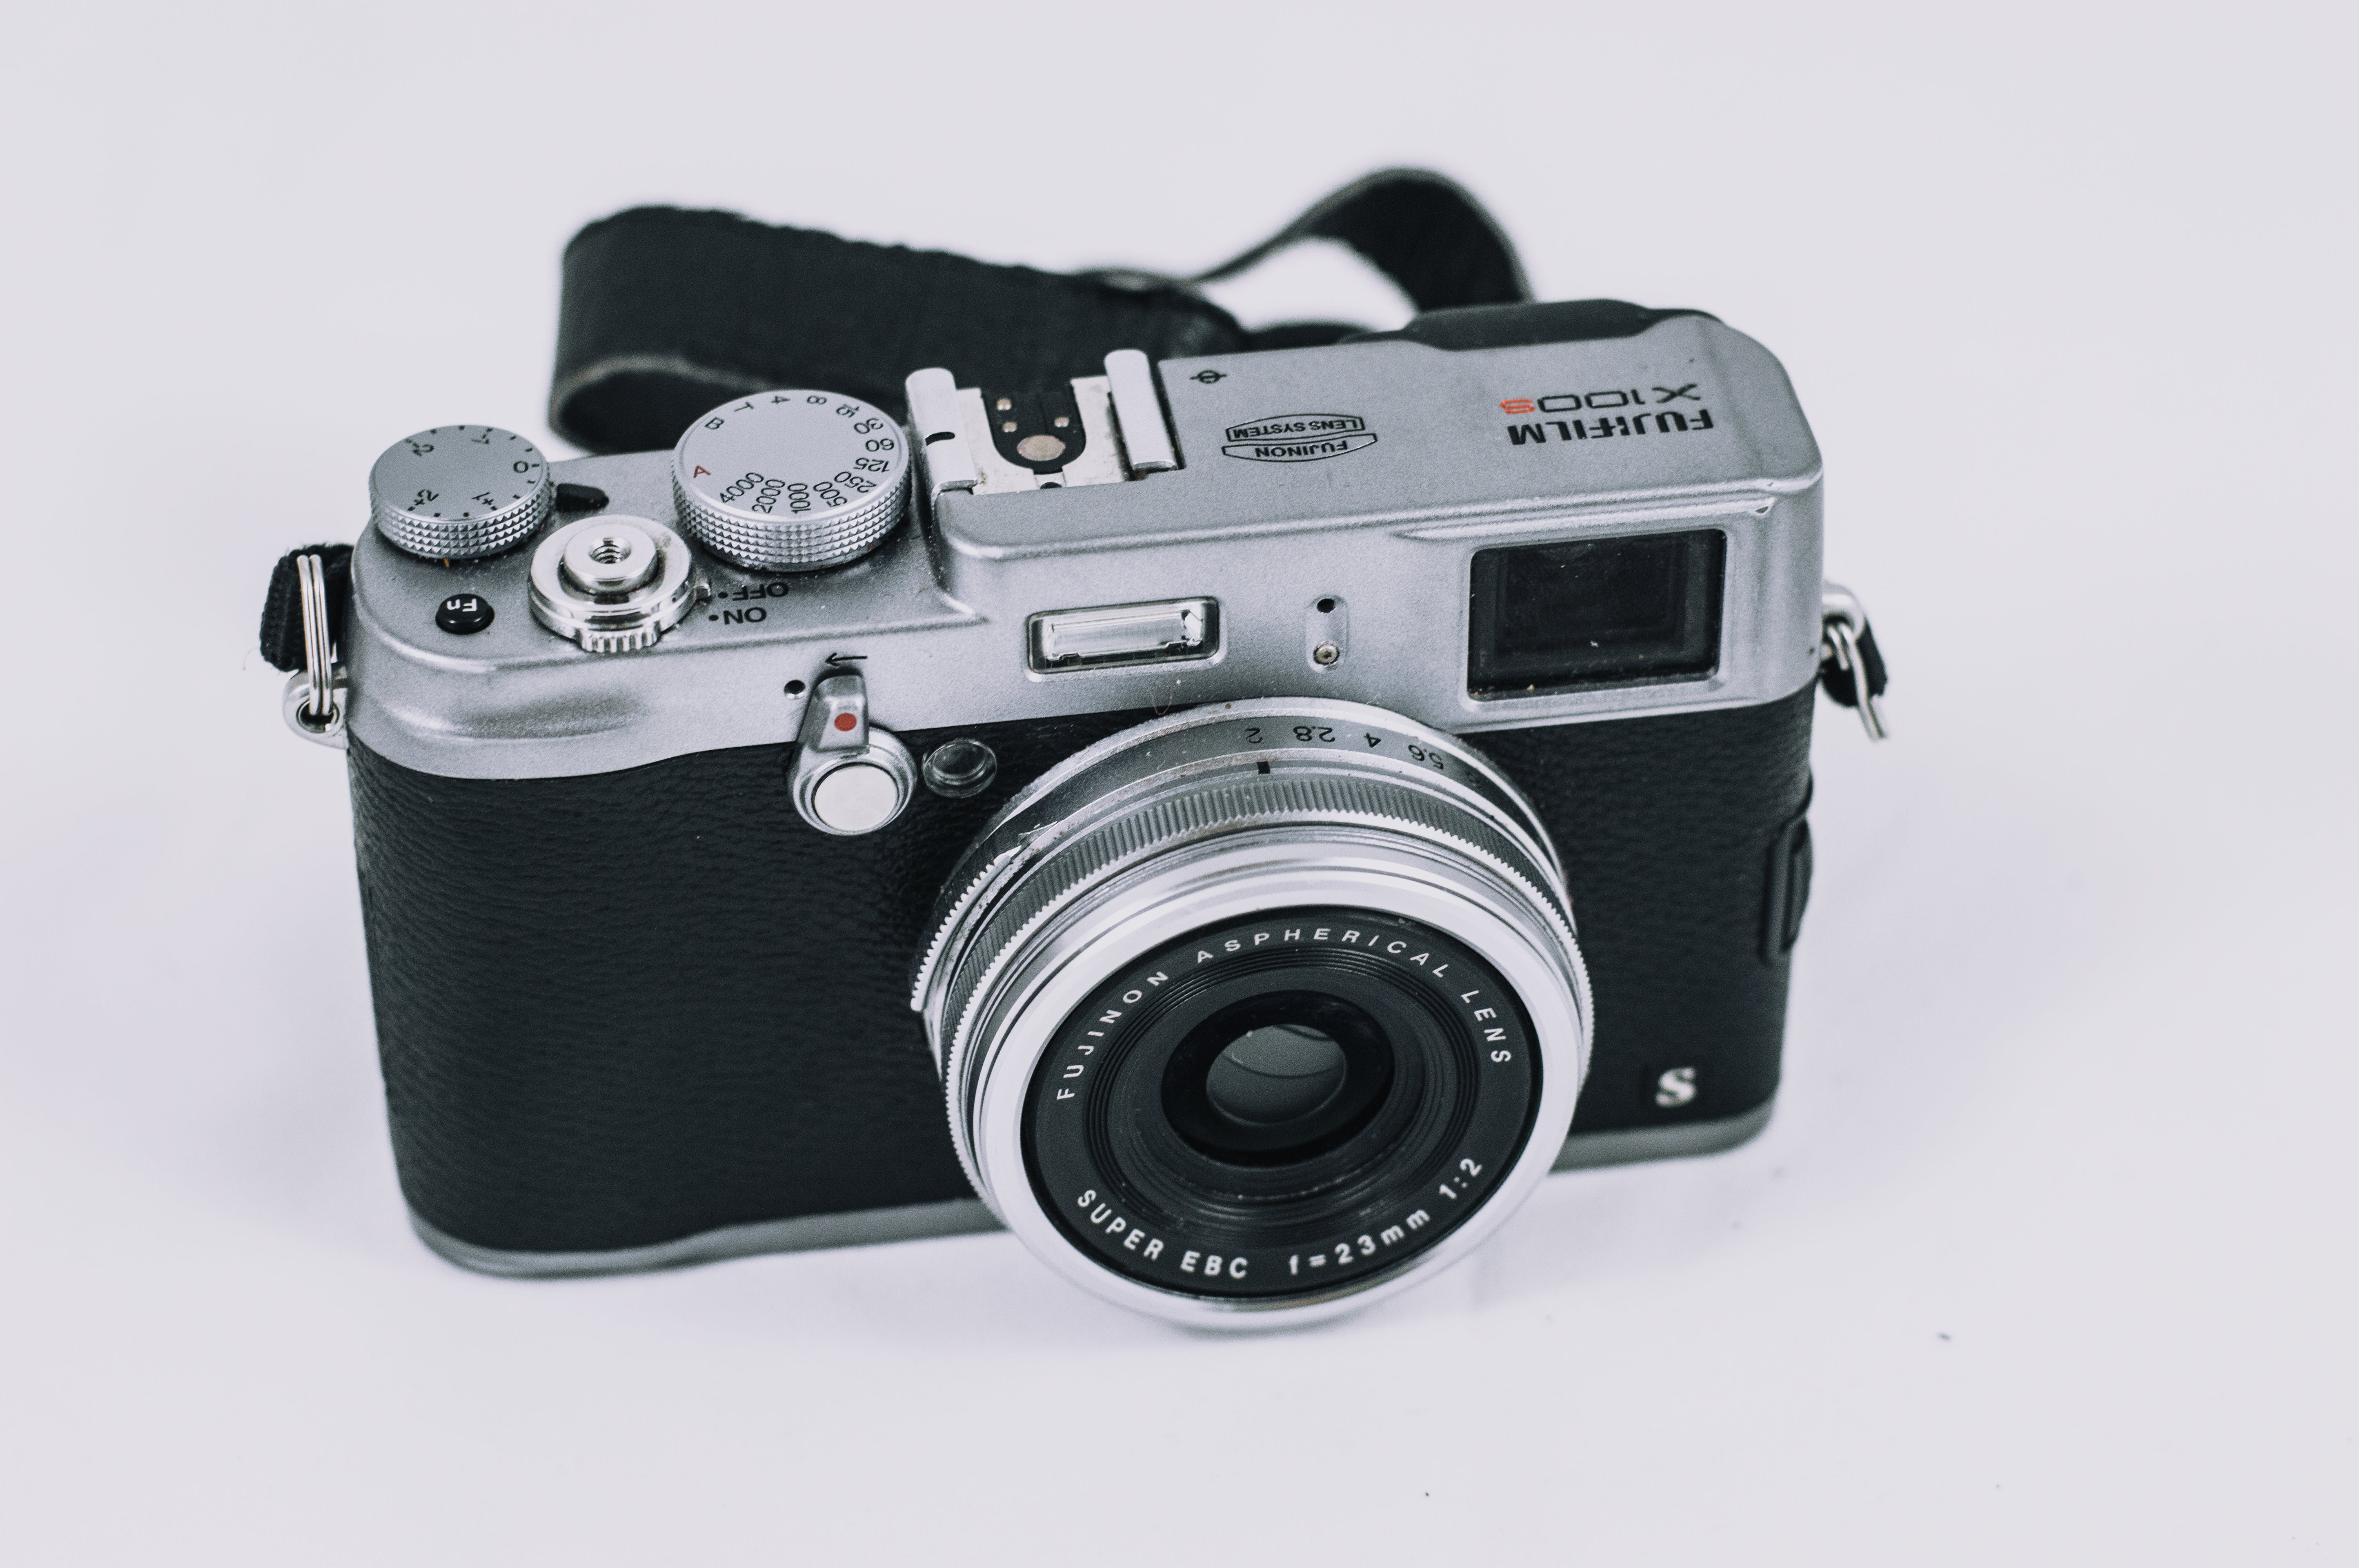 Black and Gray Fujifilm Camera